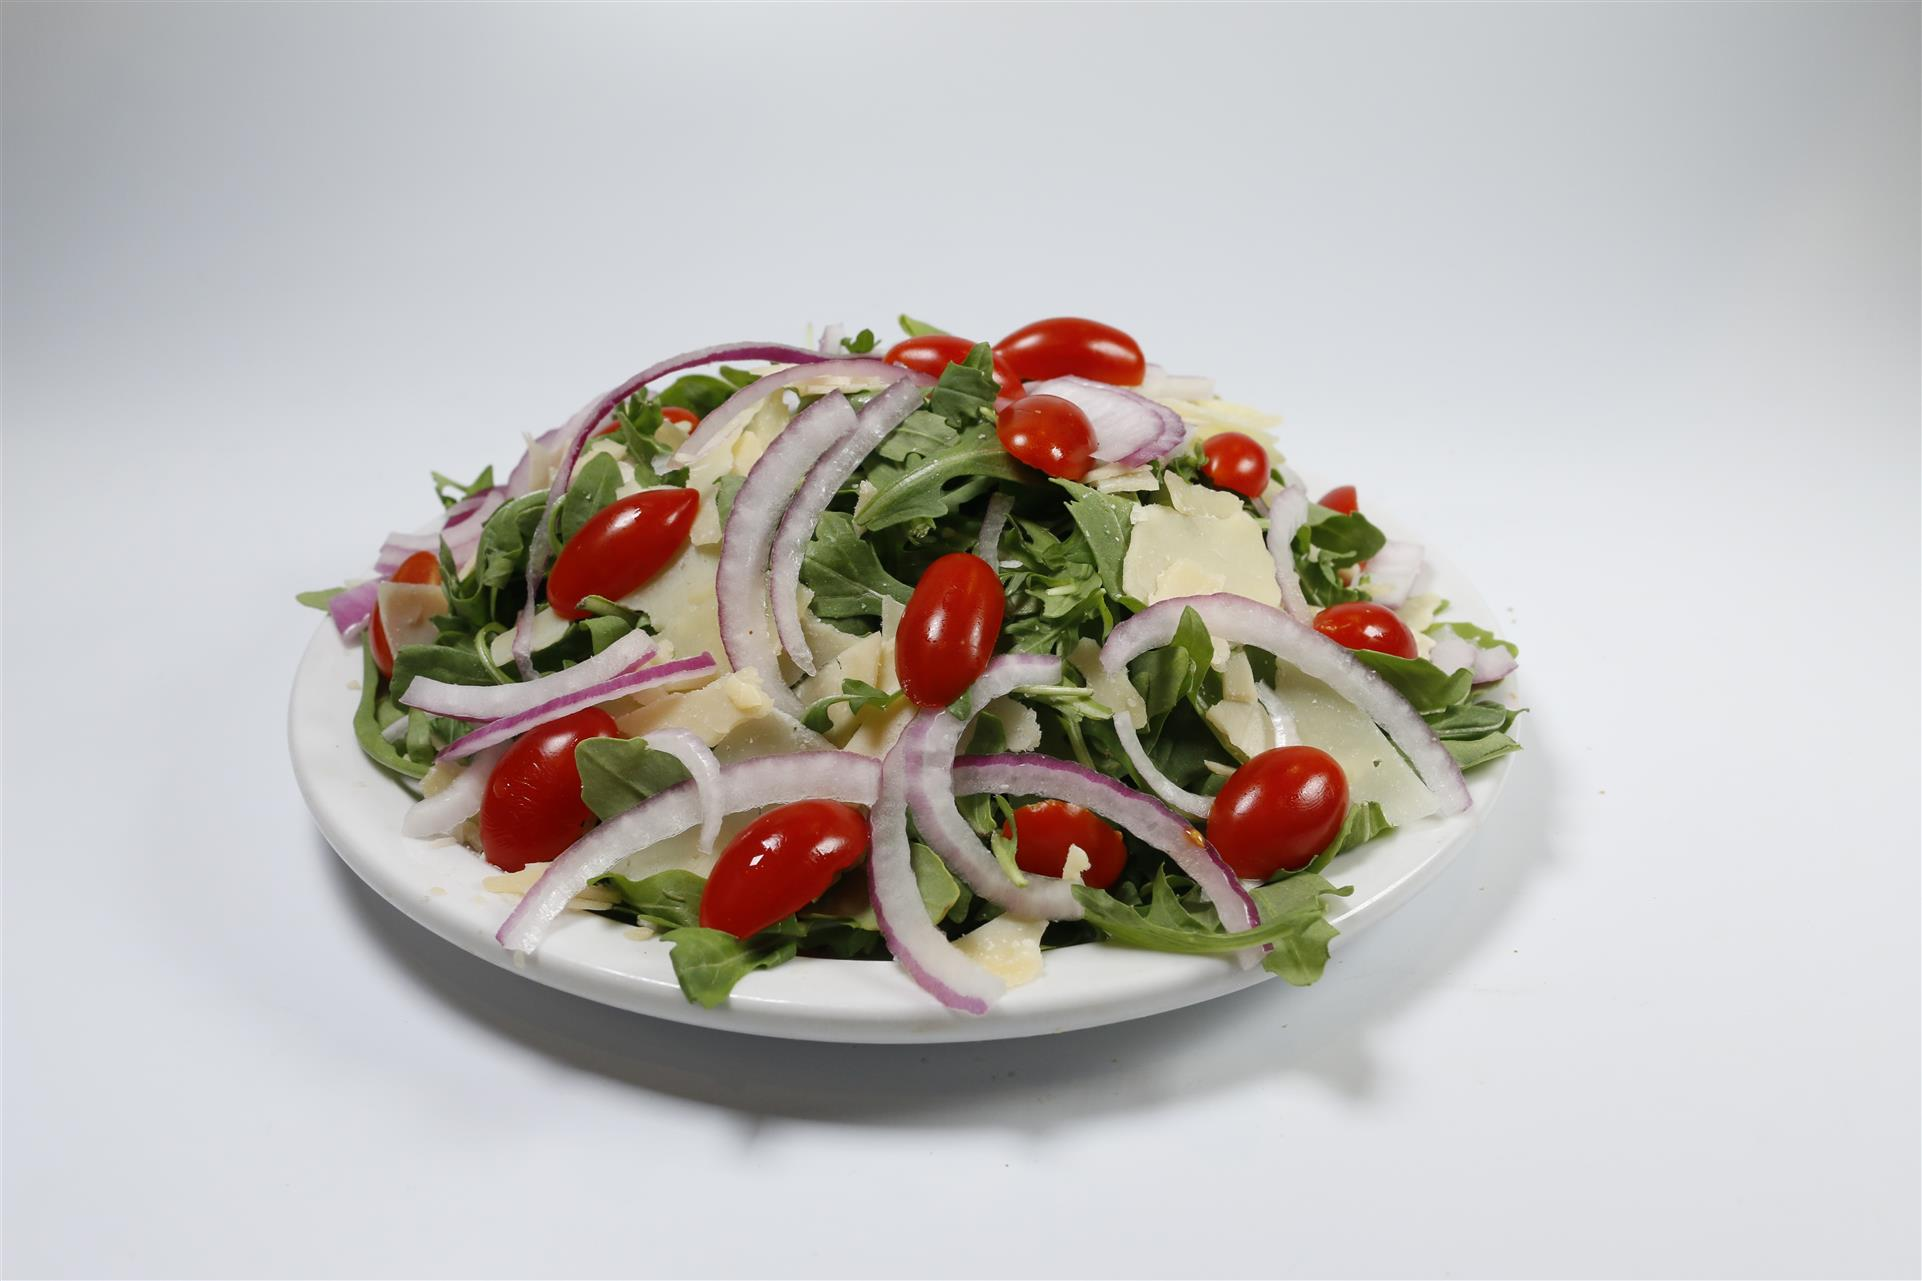 arugula salad with cherry tomatoes, red onion, and parmesan cheese